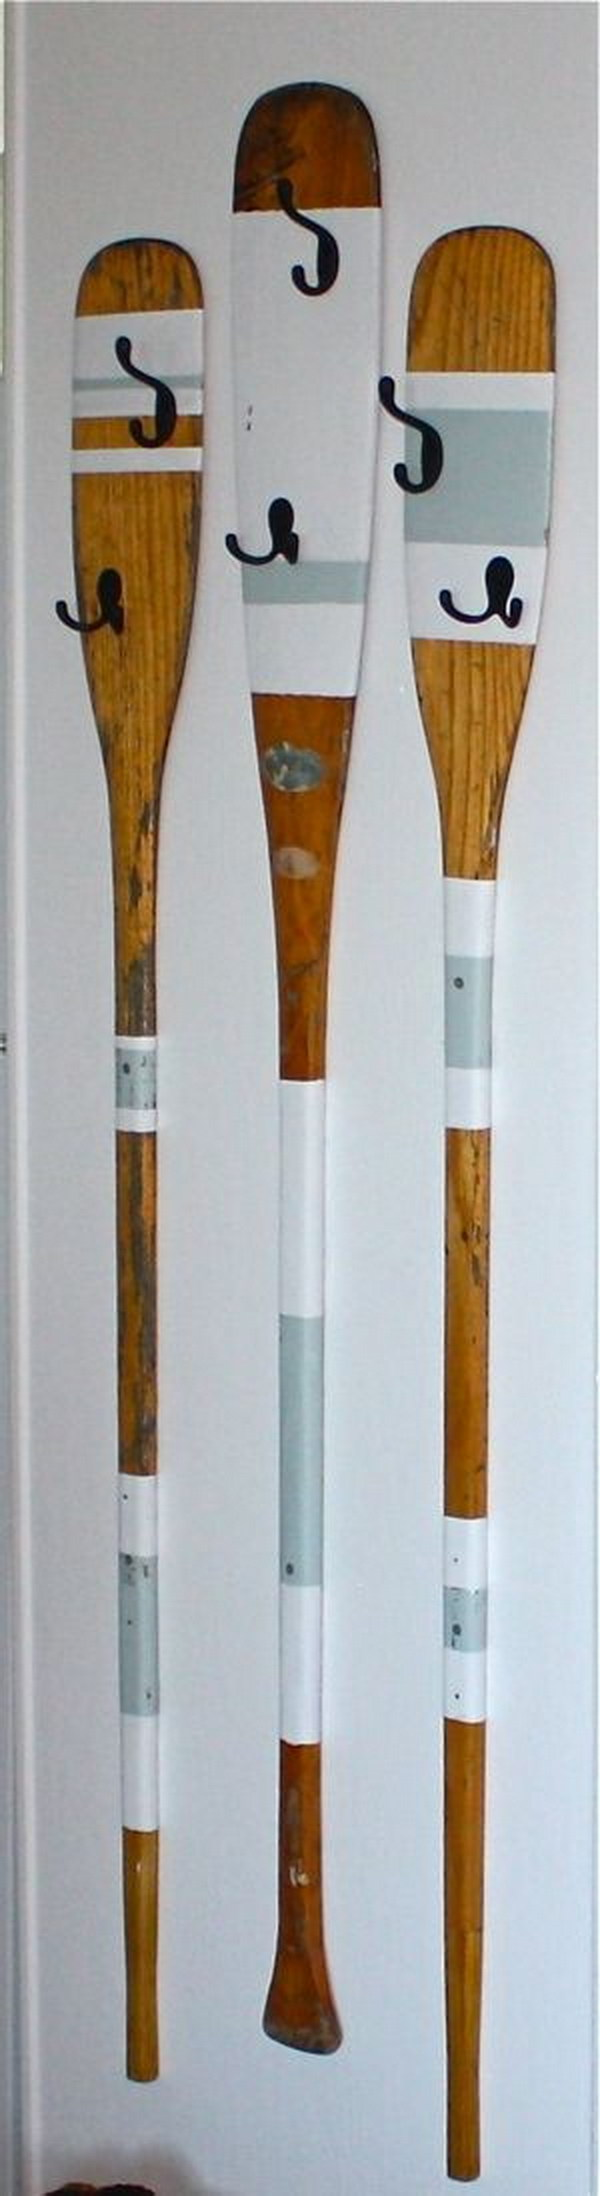 Upcycled Rowing Oars Coat Hangers